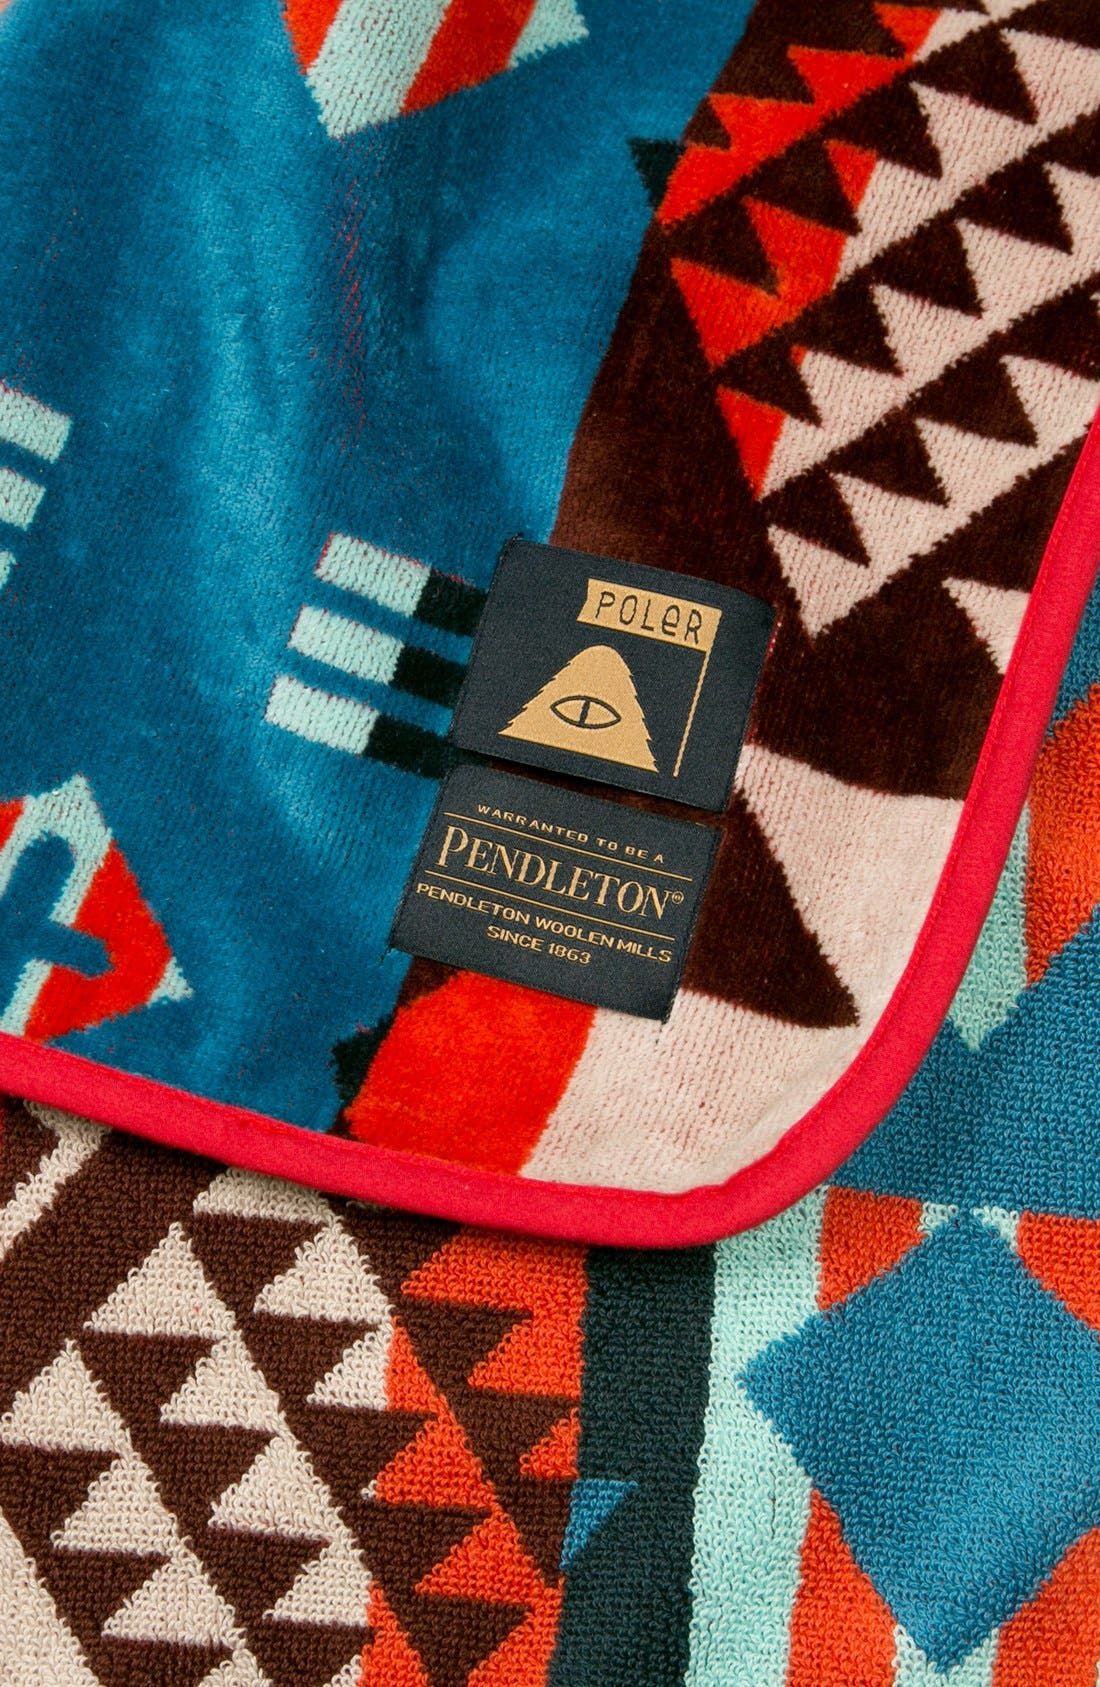 'Pendleton' Cotton Poncho,                             Alternate thumbnail 2, color,                             649